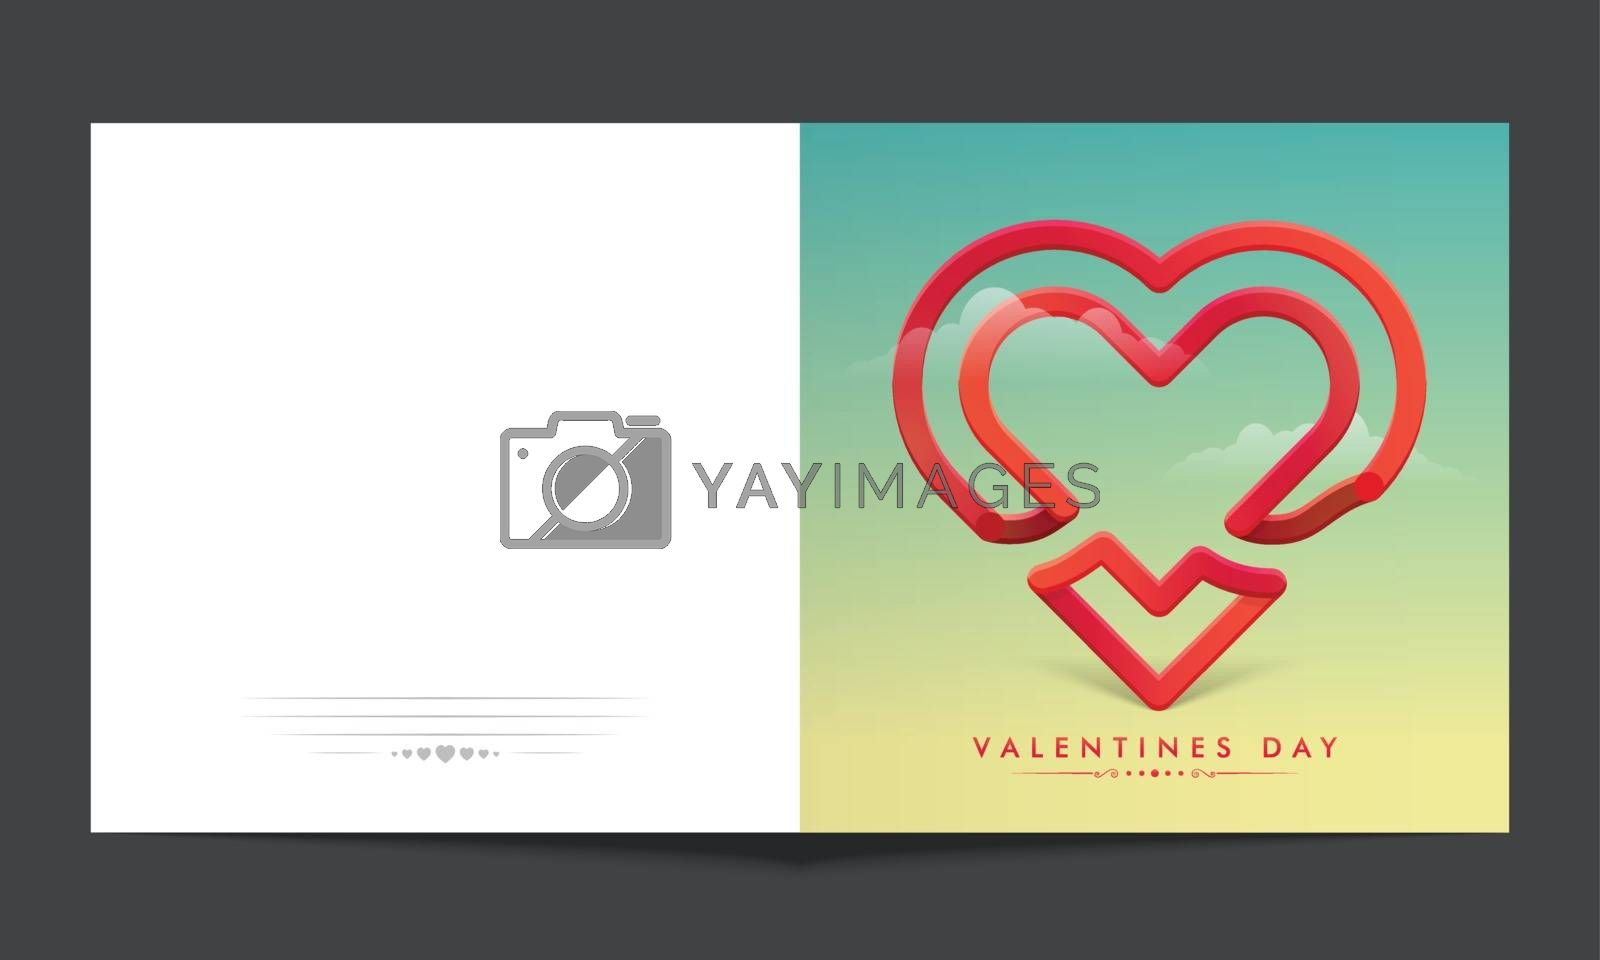 Greeting card with creative Heart Shape for Happy Valentine's Day Celebration.